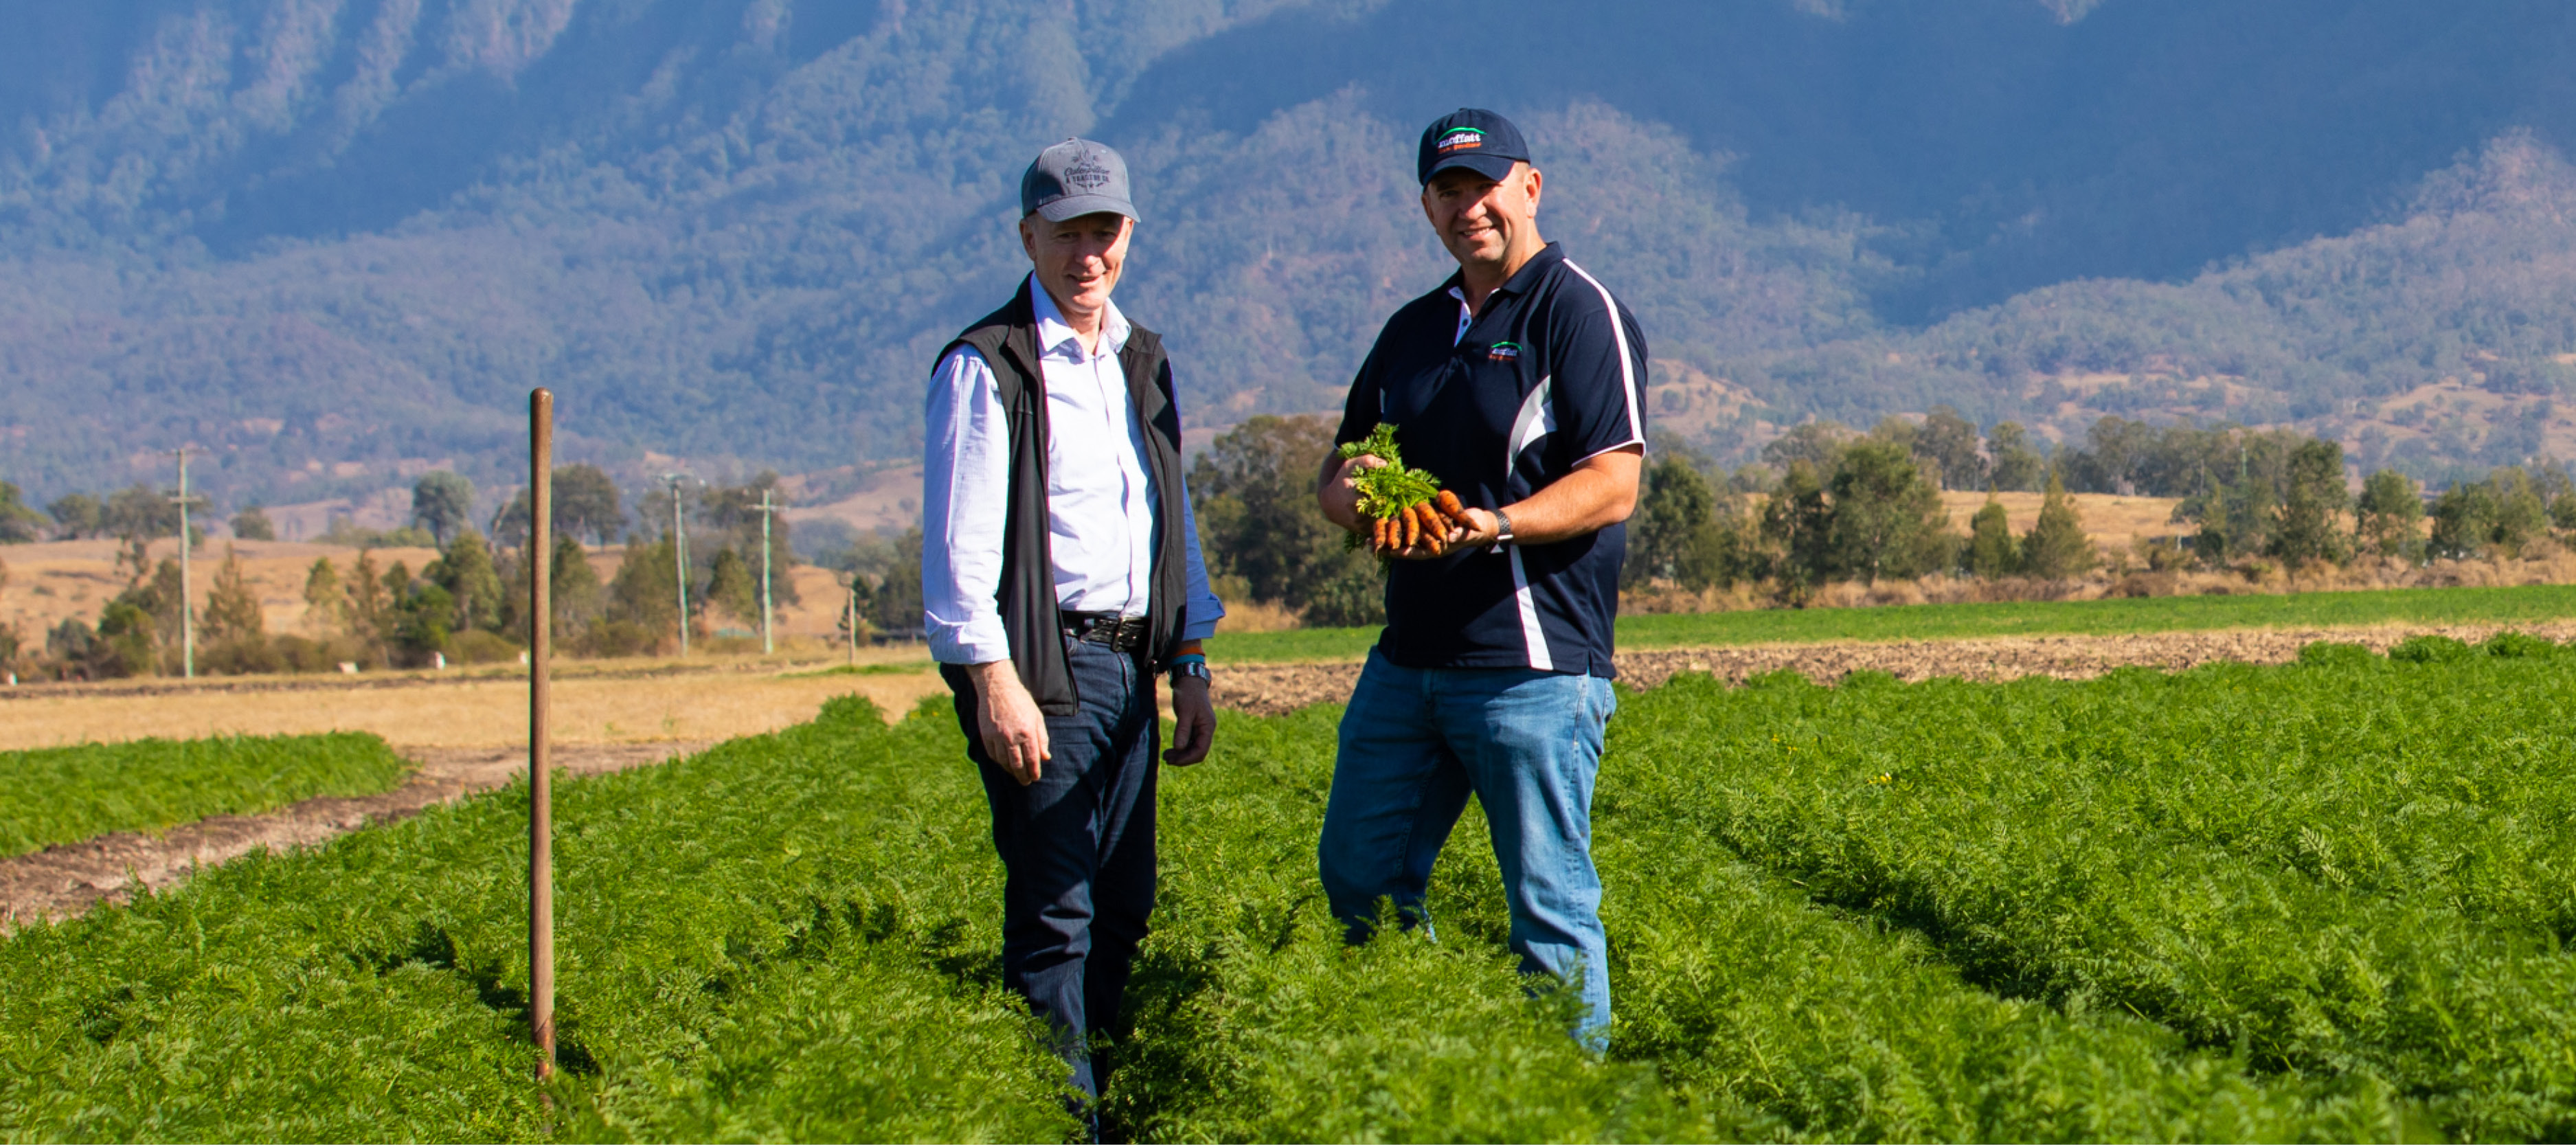 David Pugh with Steve Moffatt on Moffat Carrot Farm holding fresh carrots